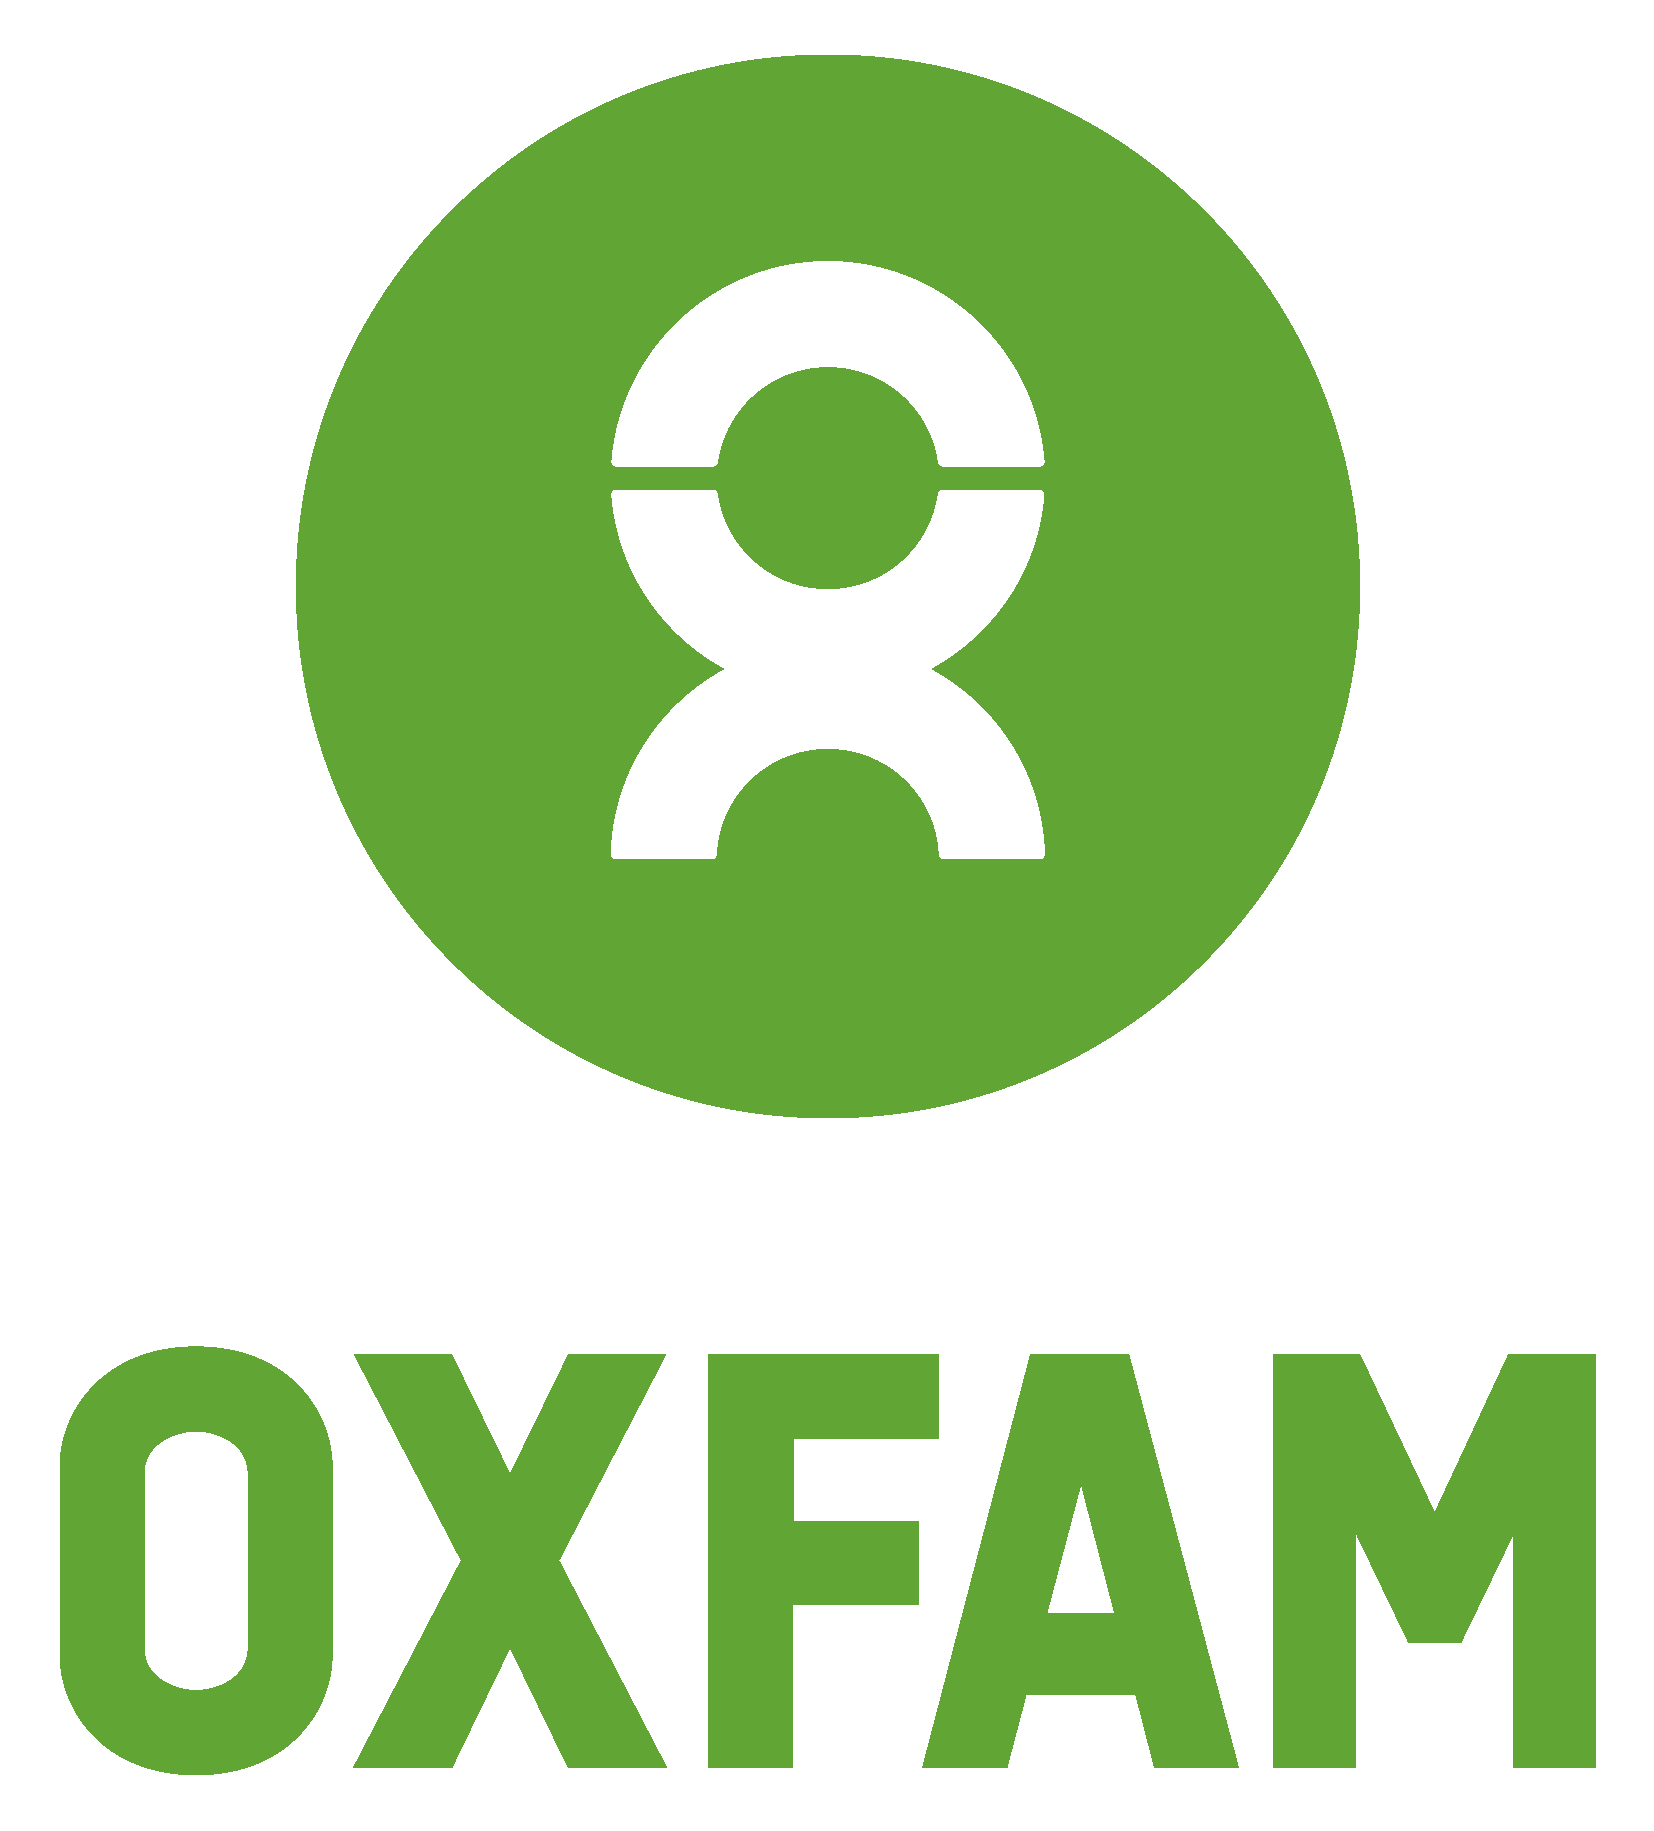 Oxfam Png - Logos for print and digital use | Oxfam